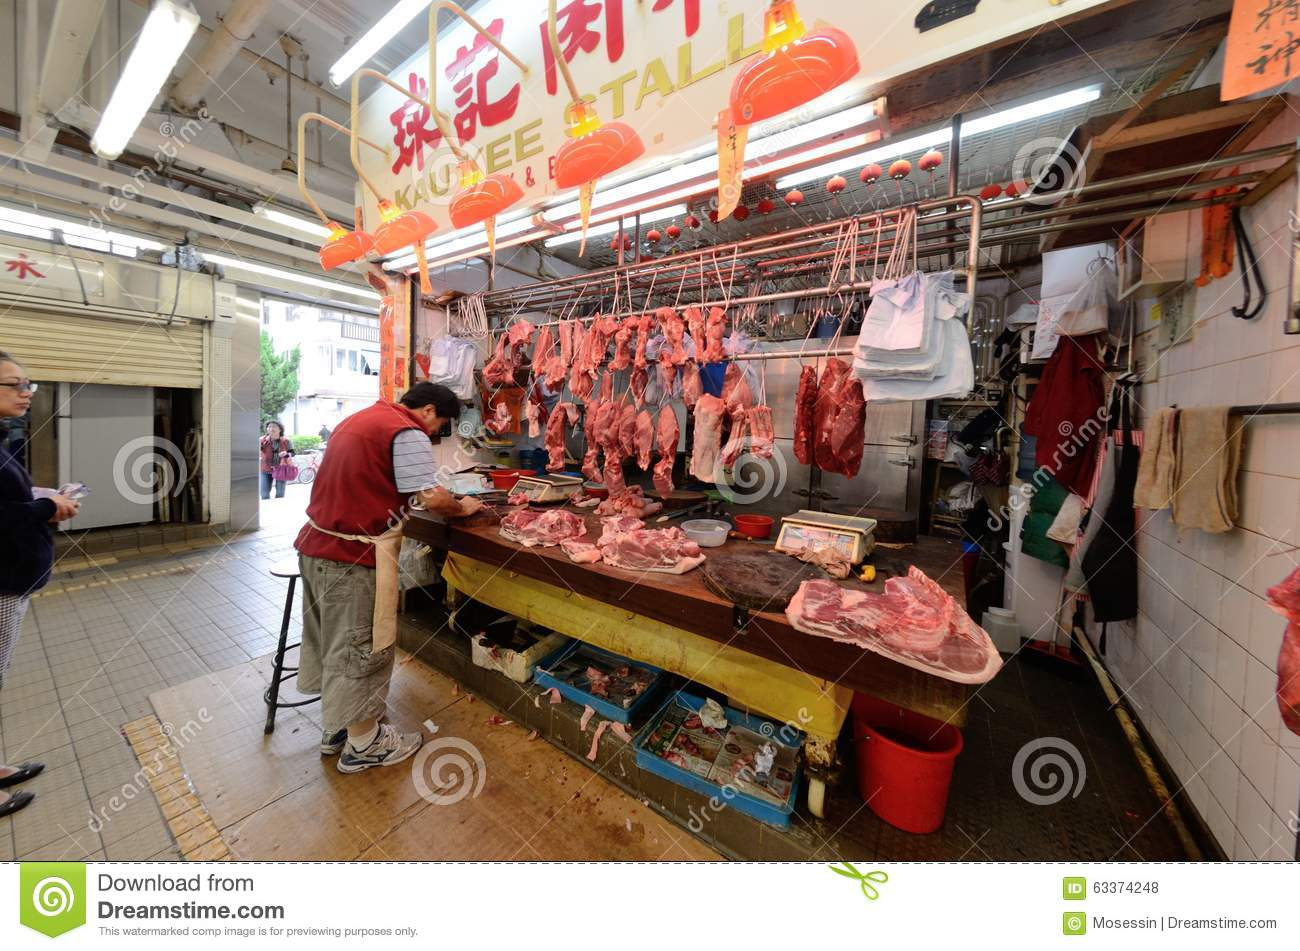 meat market stock images - photo #46